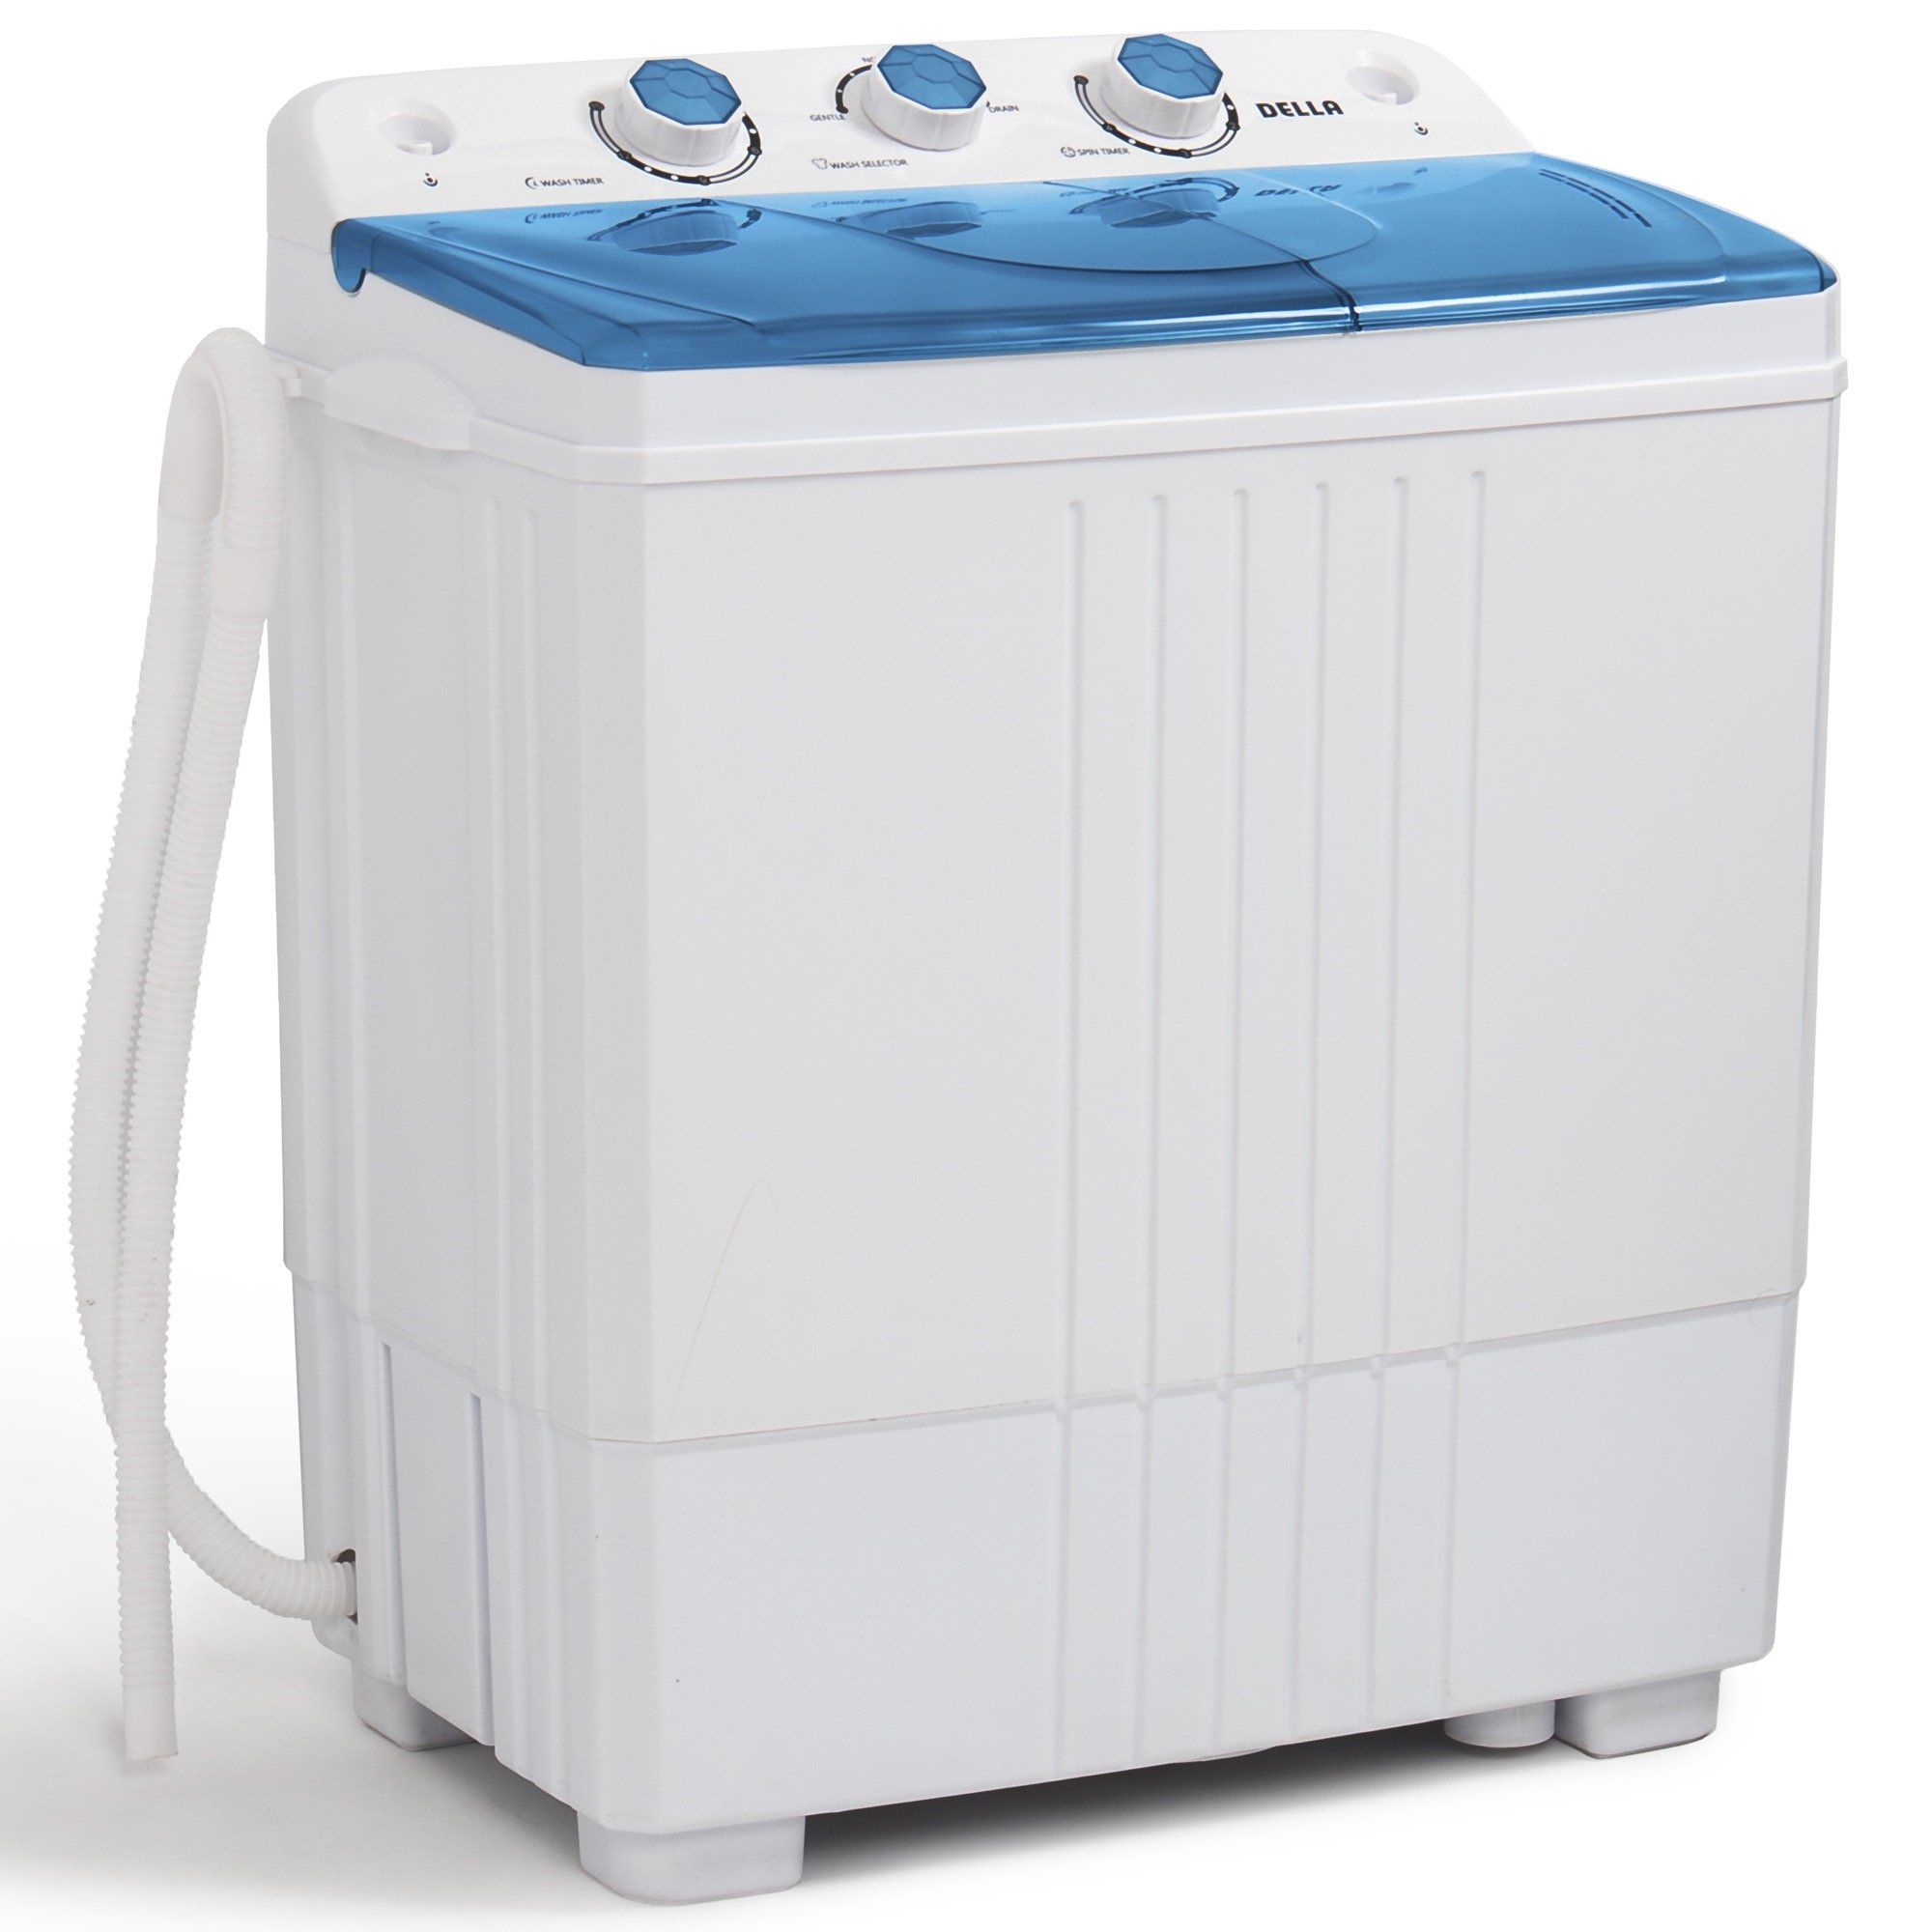 DELLA Small Compact Portable Washing Machine Top Load Laundry Washer with Spin & Dryer, 11lbs Capacity White Blue by DELLA